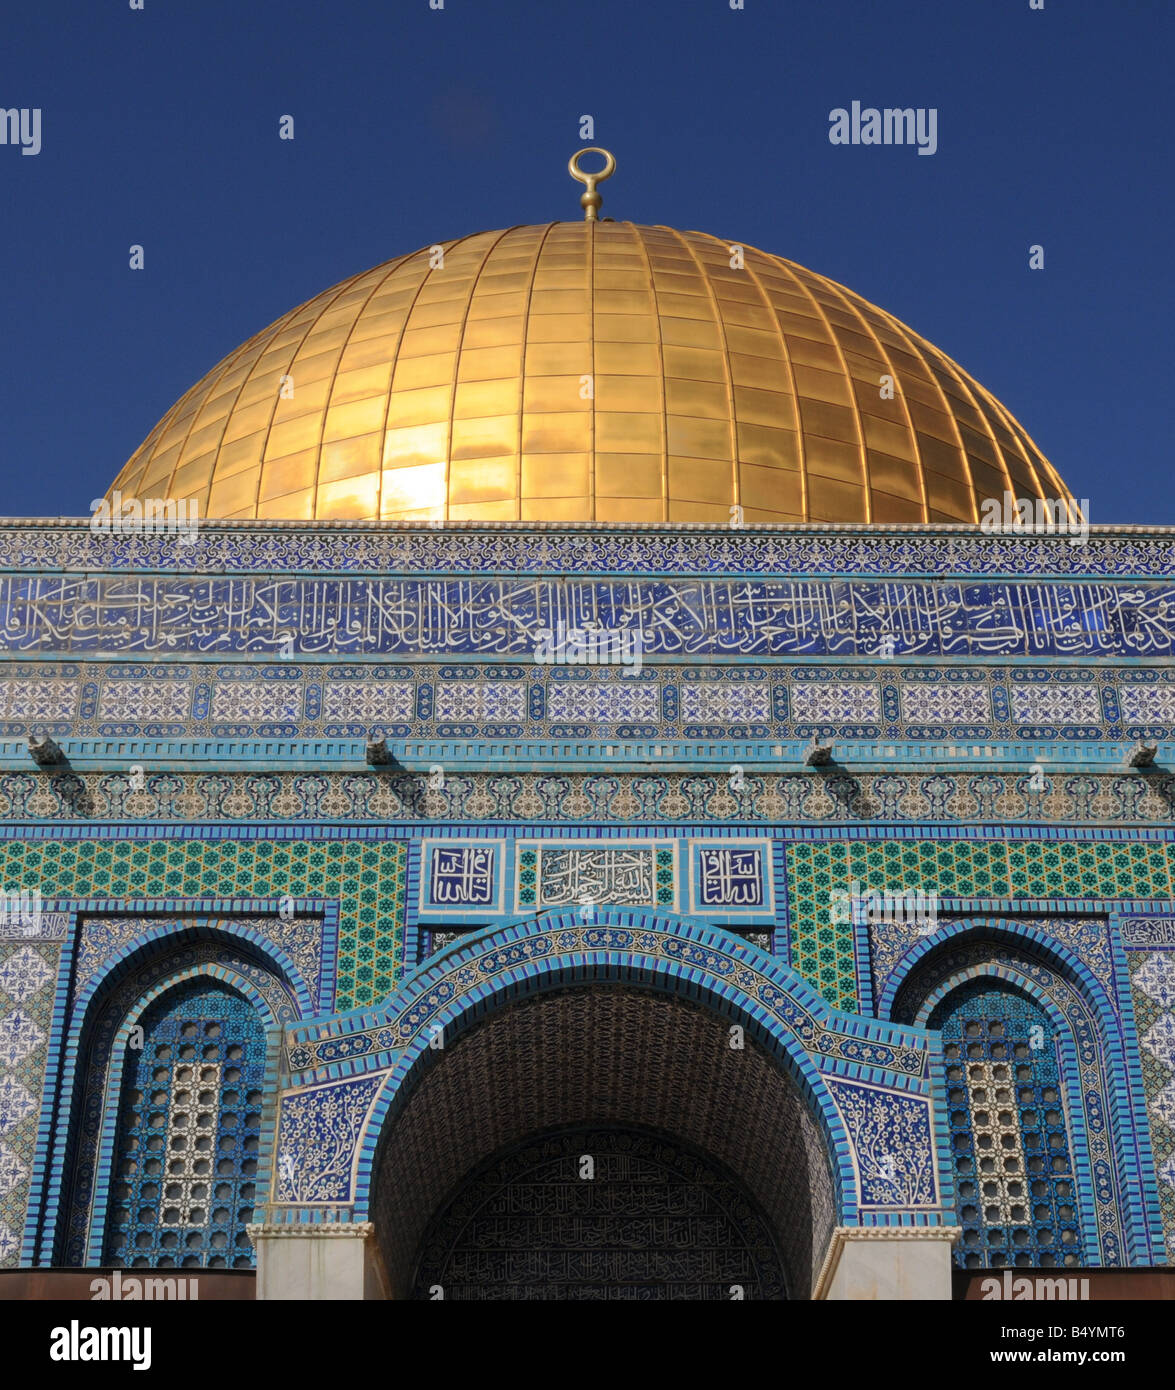 The Dome of The Rock, the world's oldest existing Islamic building, placed upon Haram-al-Sharif in Jerusalem - Stock Image